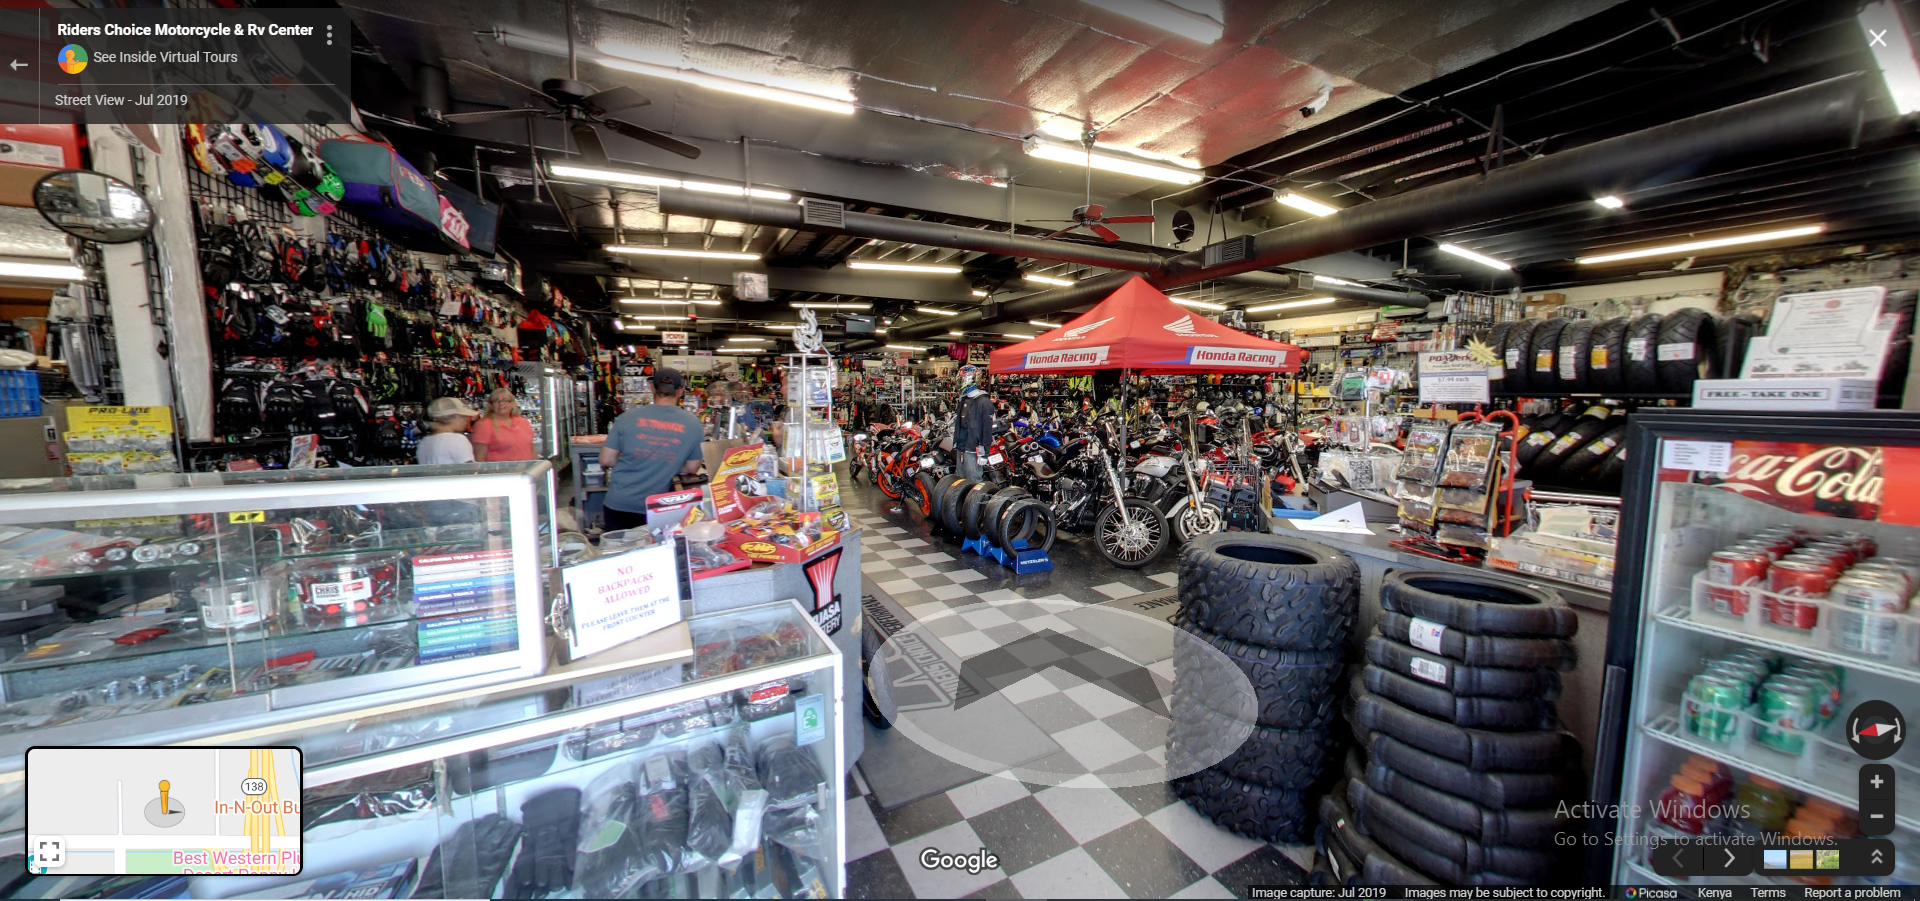 Riders Choice Motorcycle Center